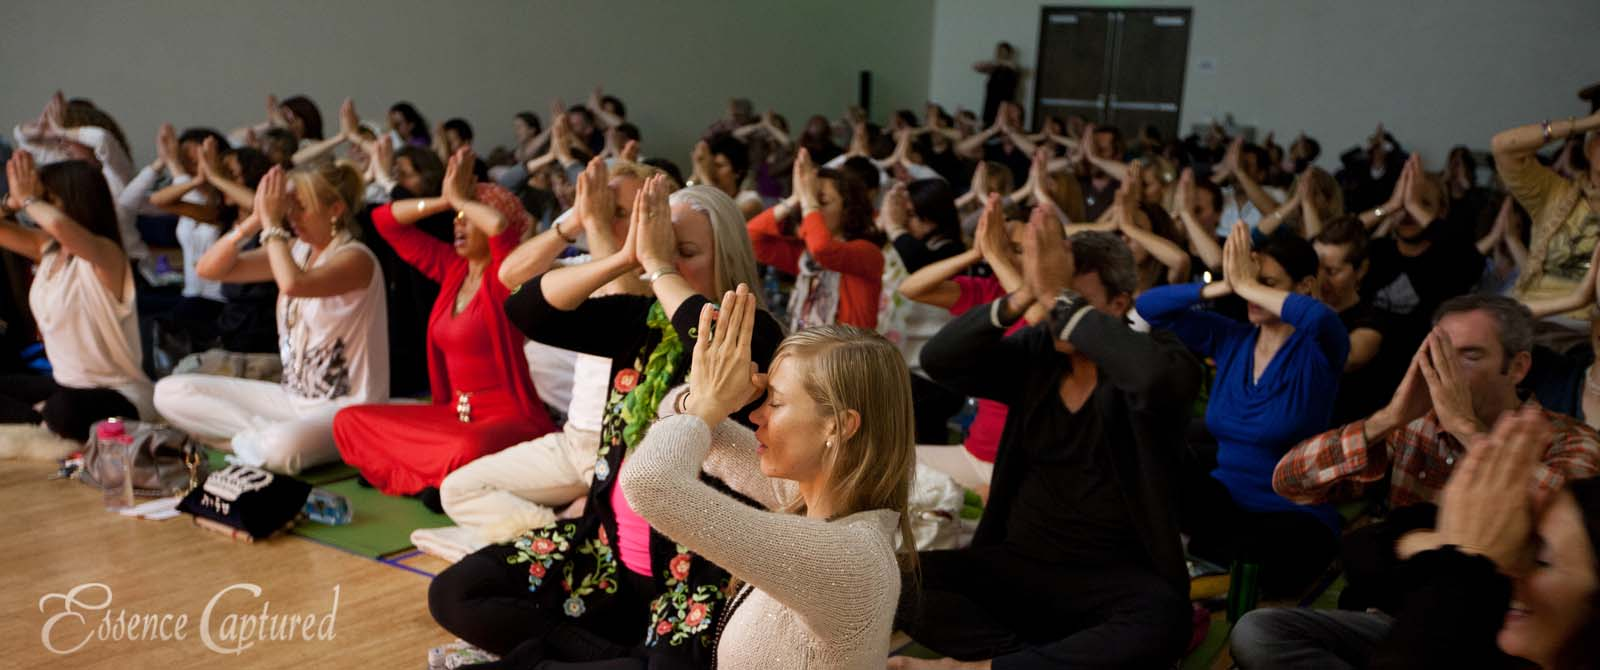 Naam Yoga L.A. New Years Eve event prayer hands at forehead